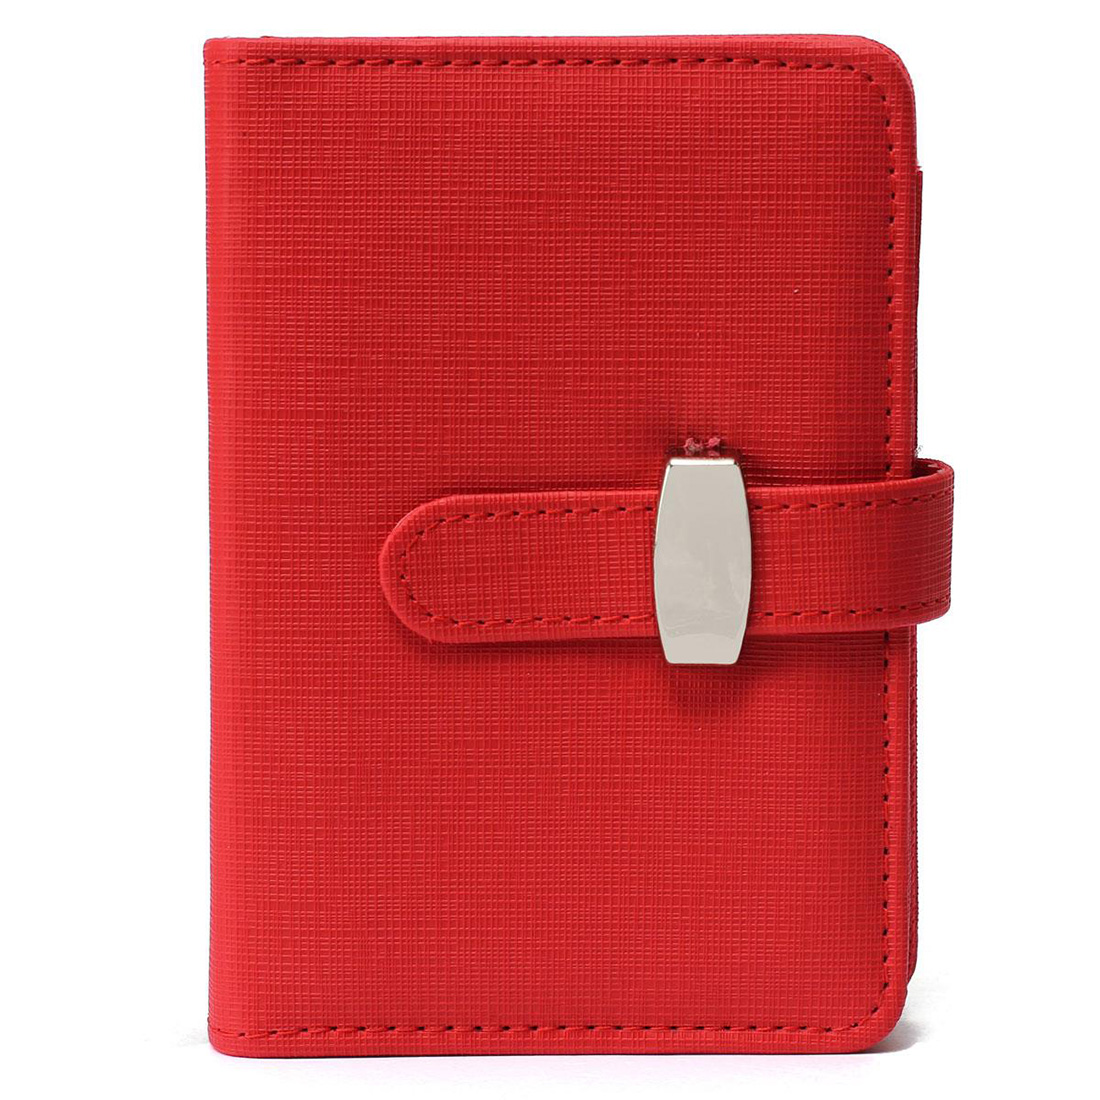 Modern Design A6/A7 Personal Organiser Planner PU Leather Cover Diary Notebook School Office Stationery a4 leather discolor manager file folder restaurant menu cover custom portfolio folders office portable pu document report cover